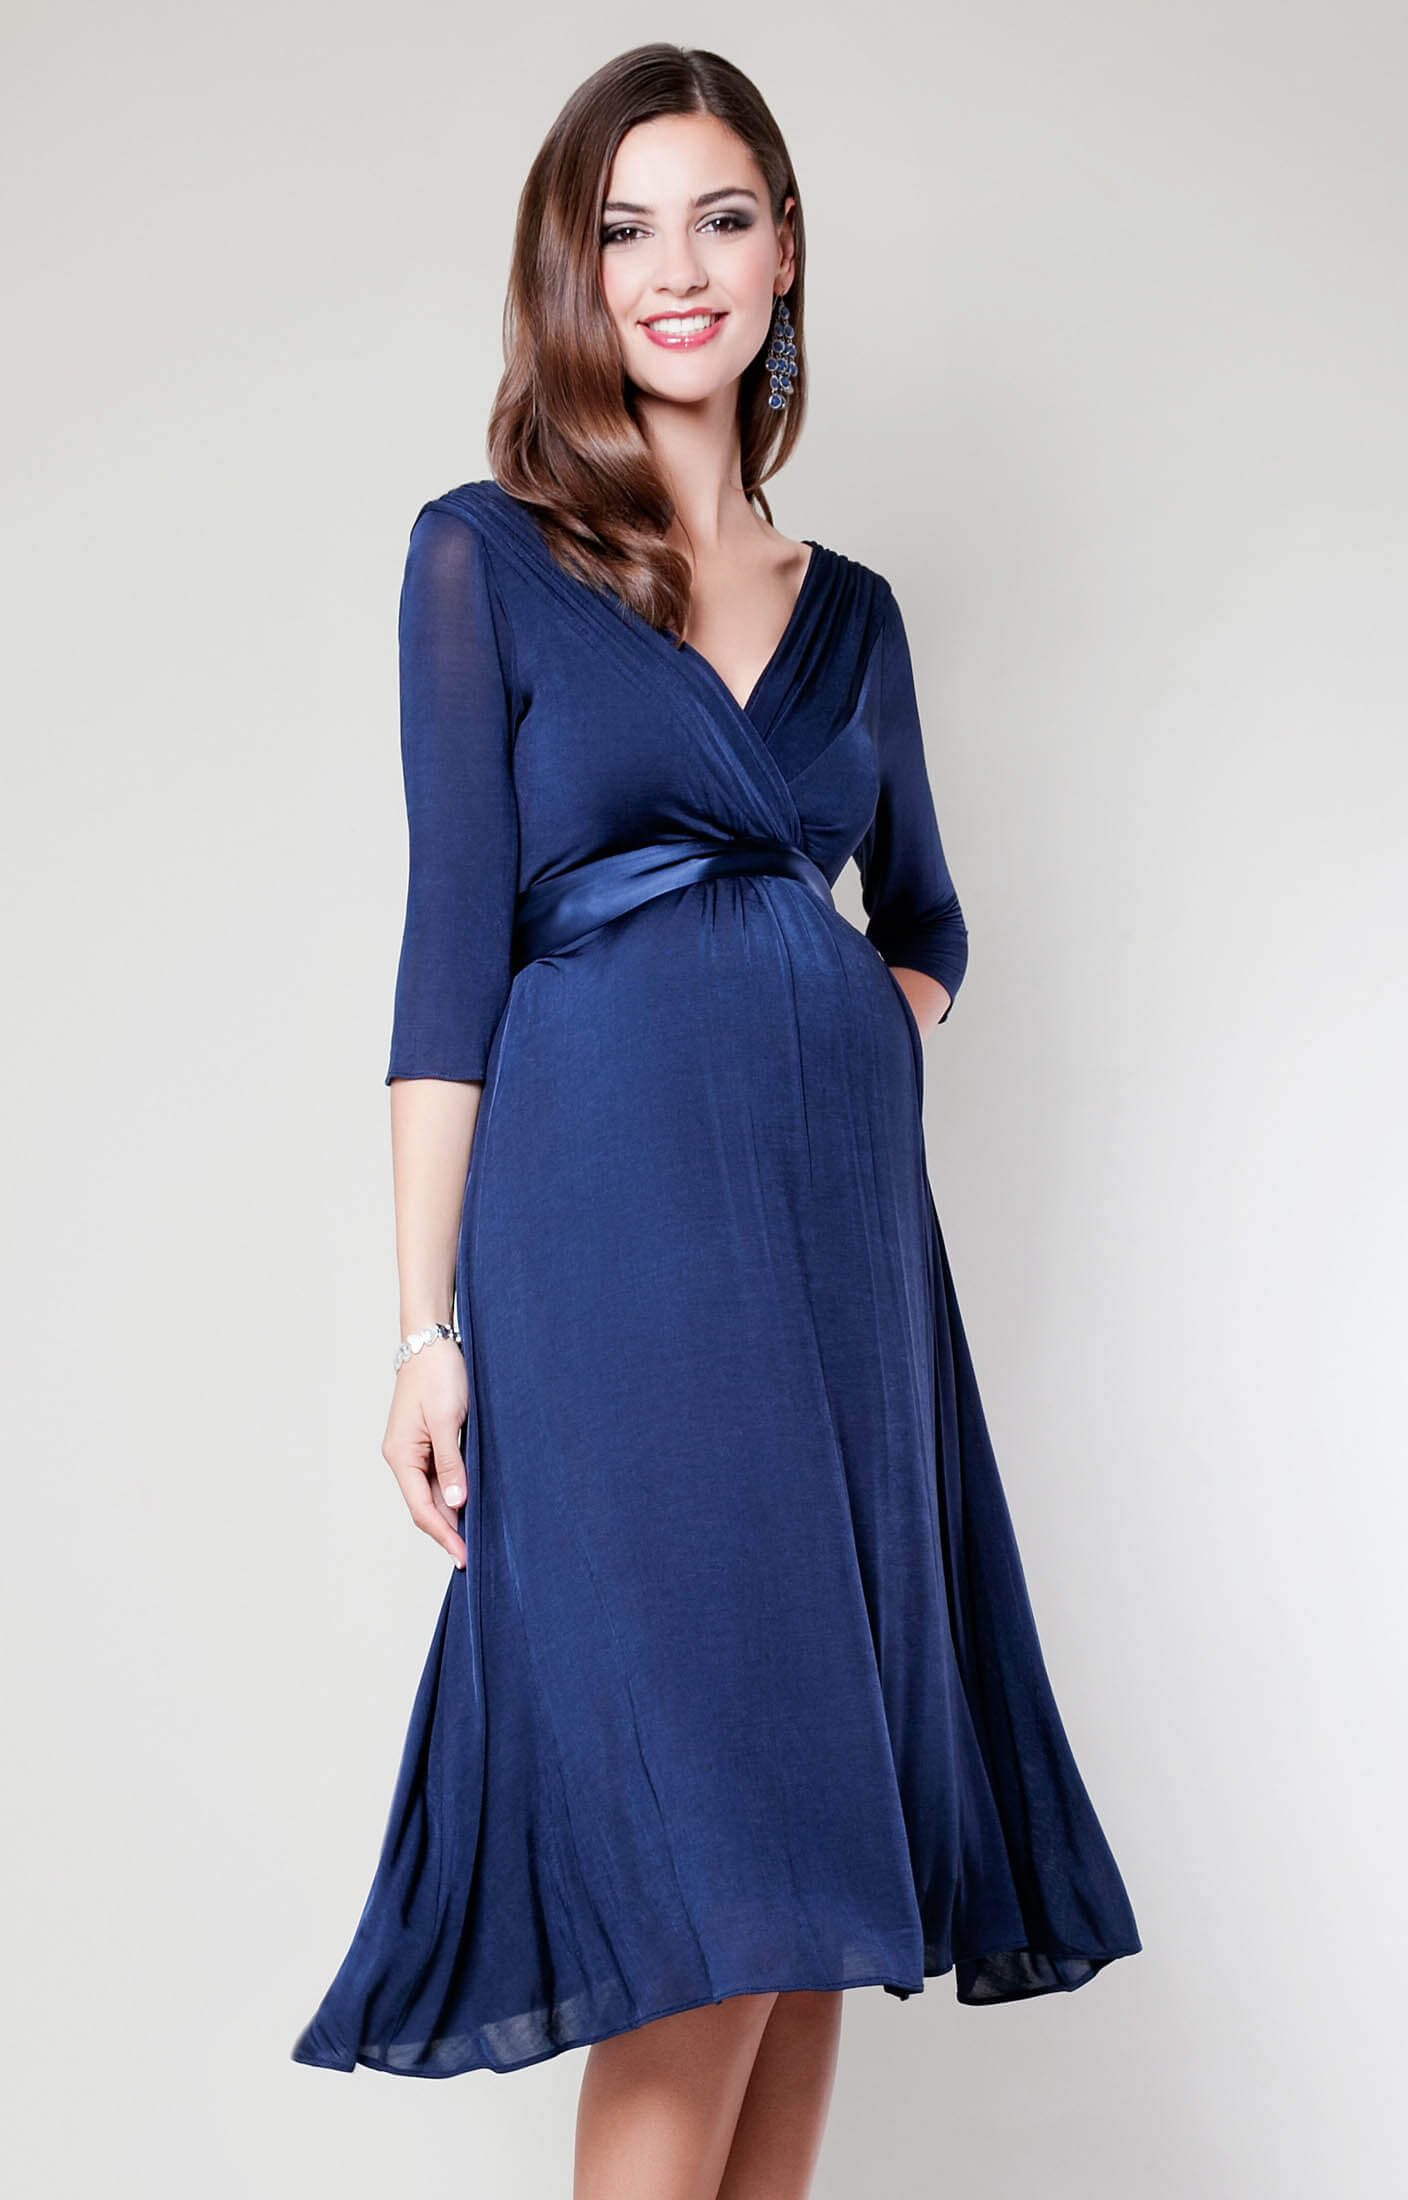 Buy Women Maternity Gowns, Pants and many more online in India. Huge range of Maternity Skater, Shift, Maxi Dresses, Bump Jeans, Pregnancy Wear for Women at Jabong from our Top Brands. Free Shipping* 15 days Return Cash on Delivery.